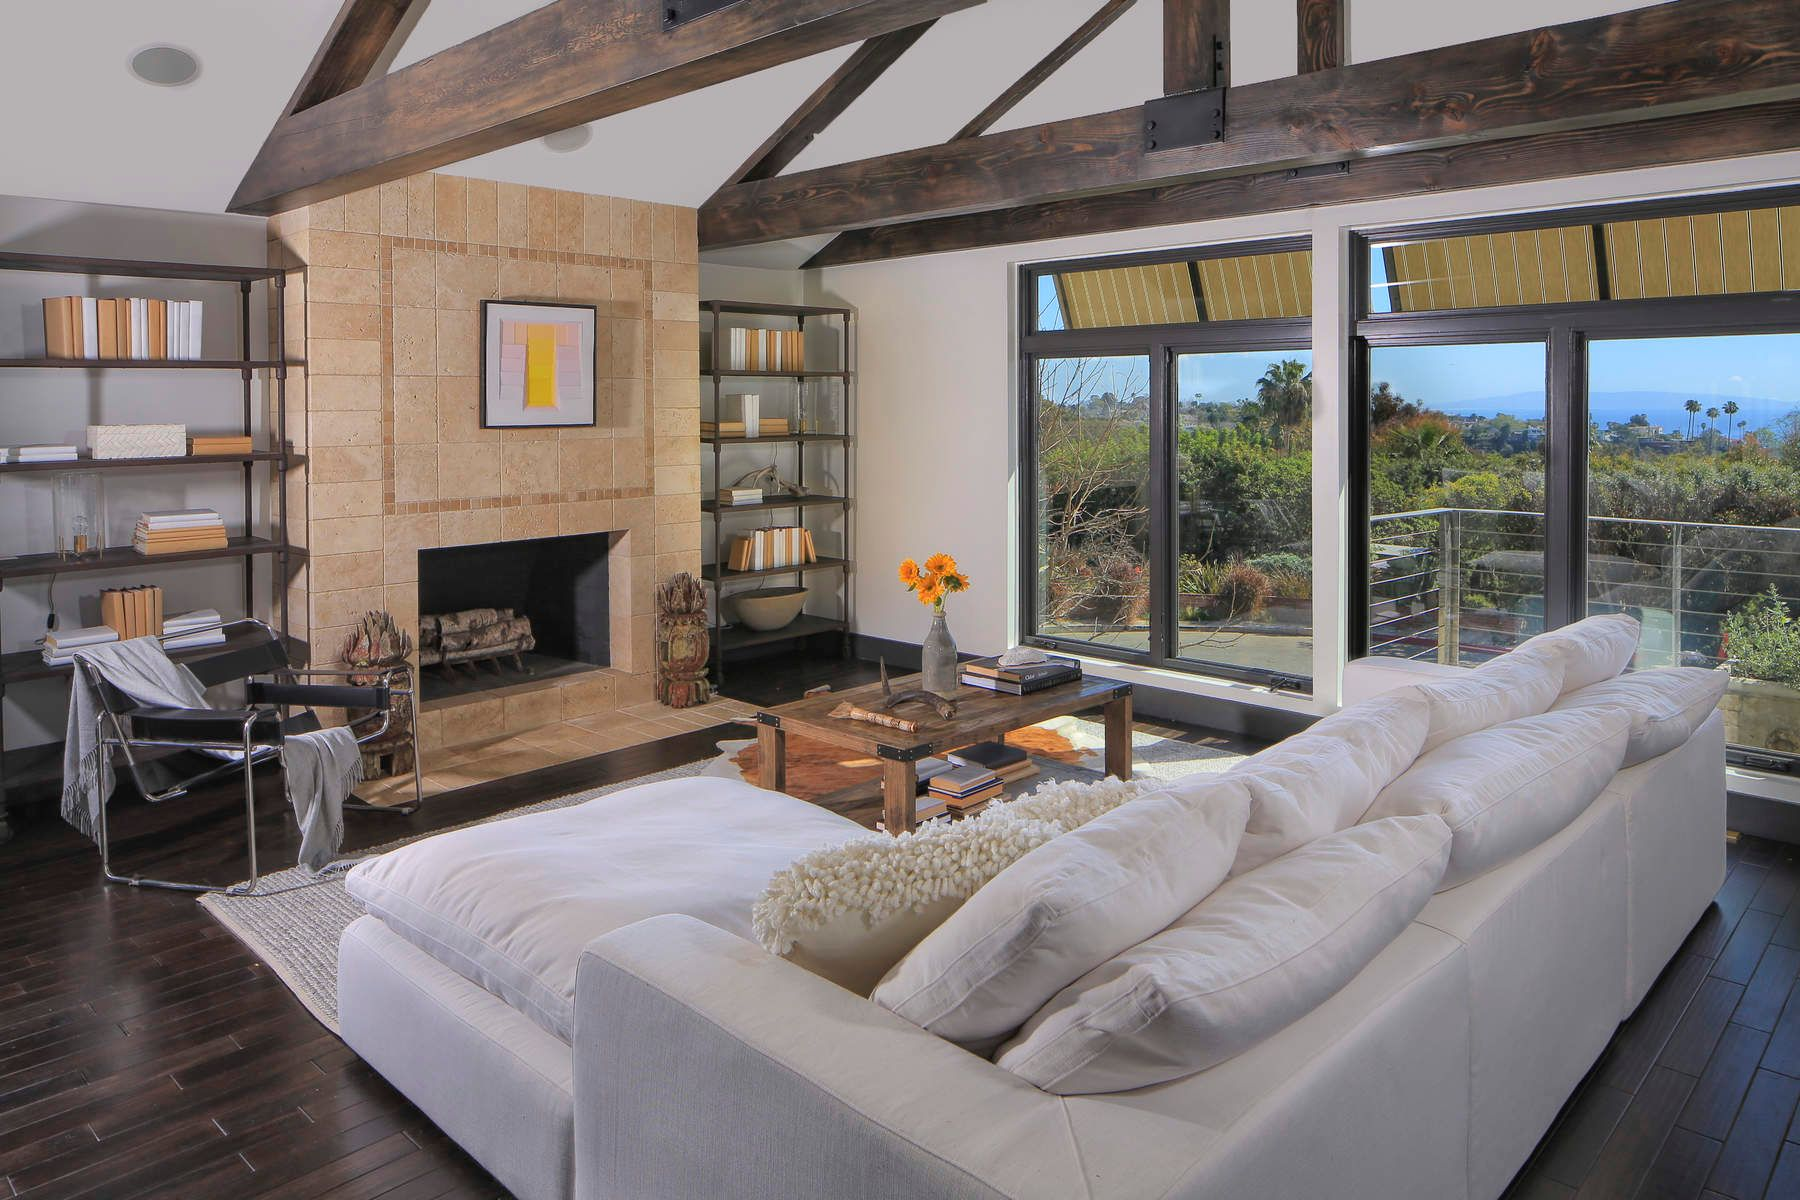 Property For Sale Pacific Palisades